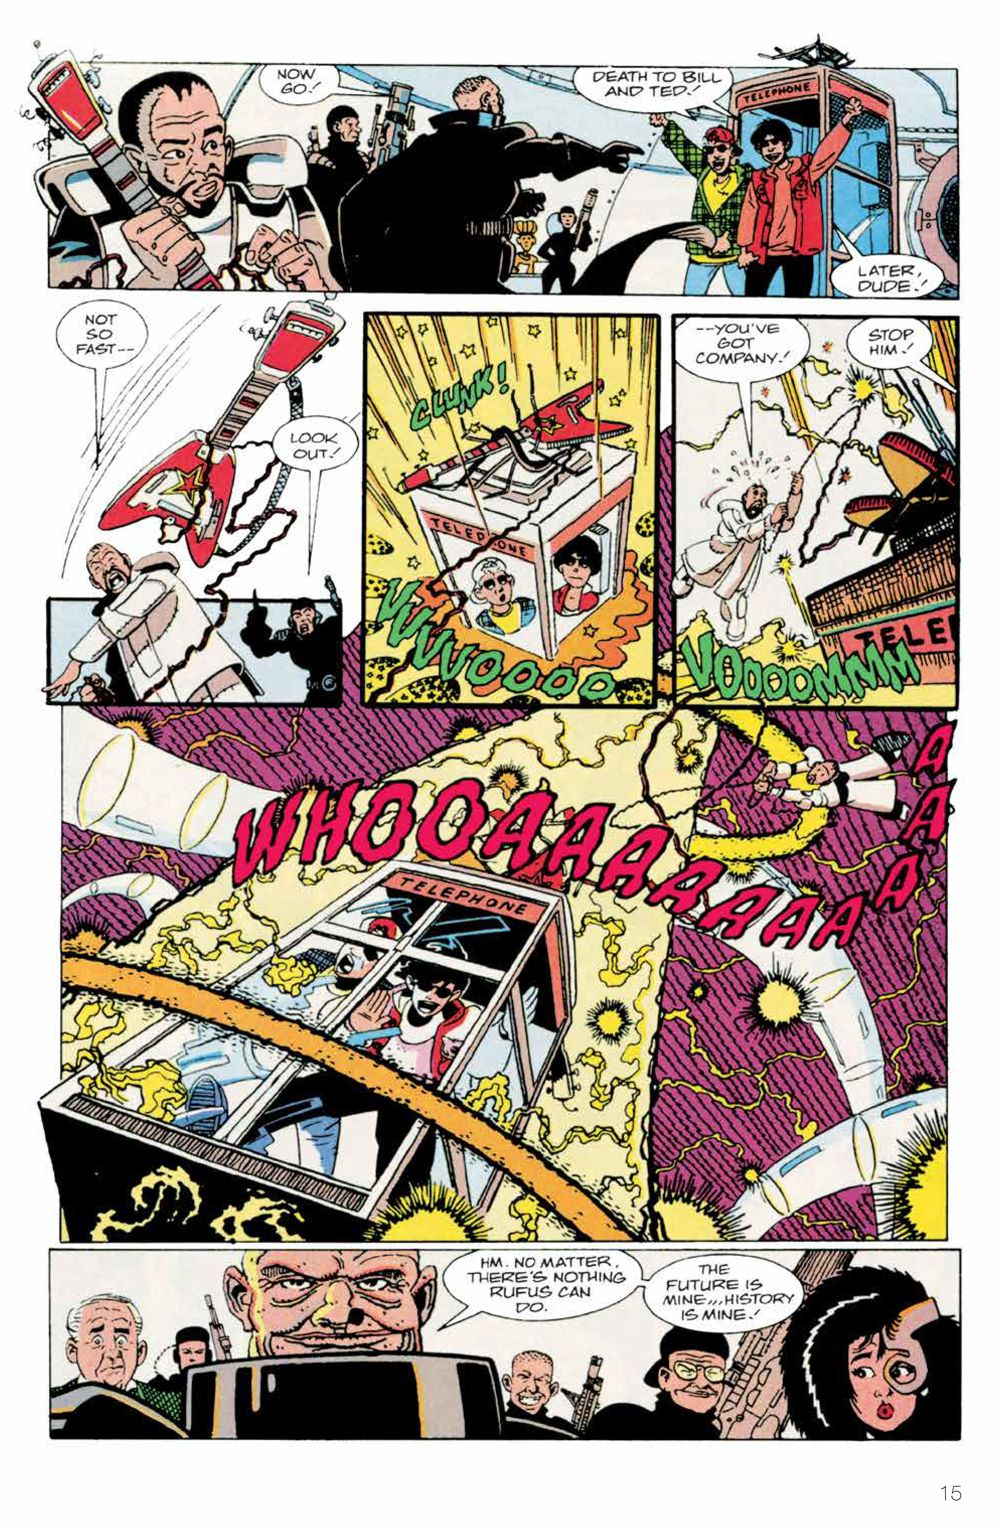 BillTed_Archive_SC_PRESS_17-1 ComicList Previews: BILL AND TED'S EXCELLENT COMIC BOOK ARCHIVE TP